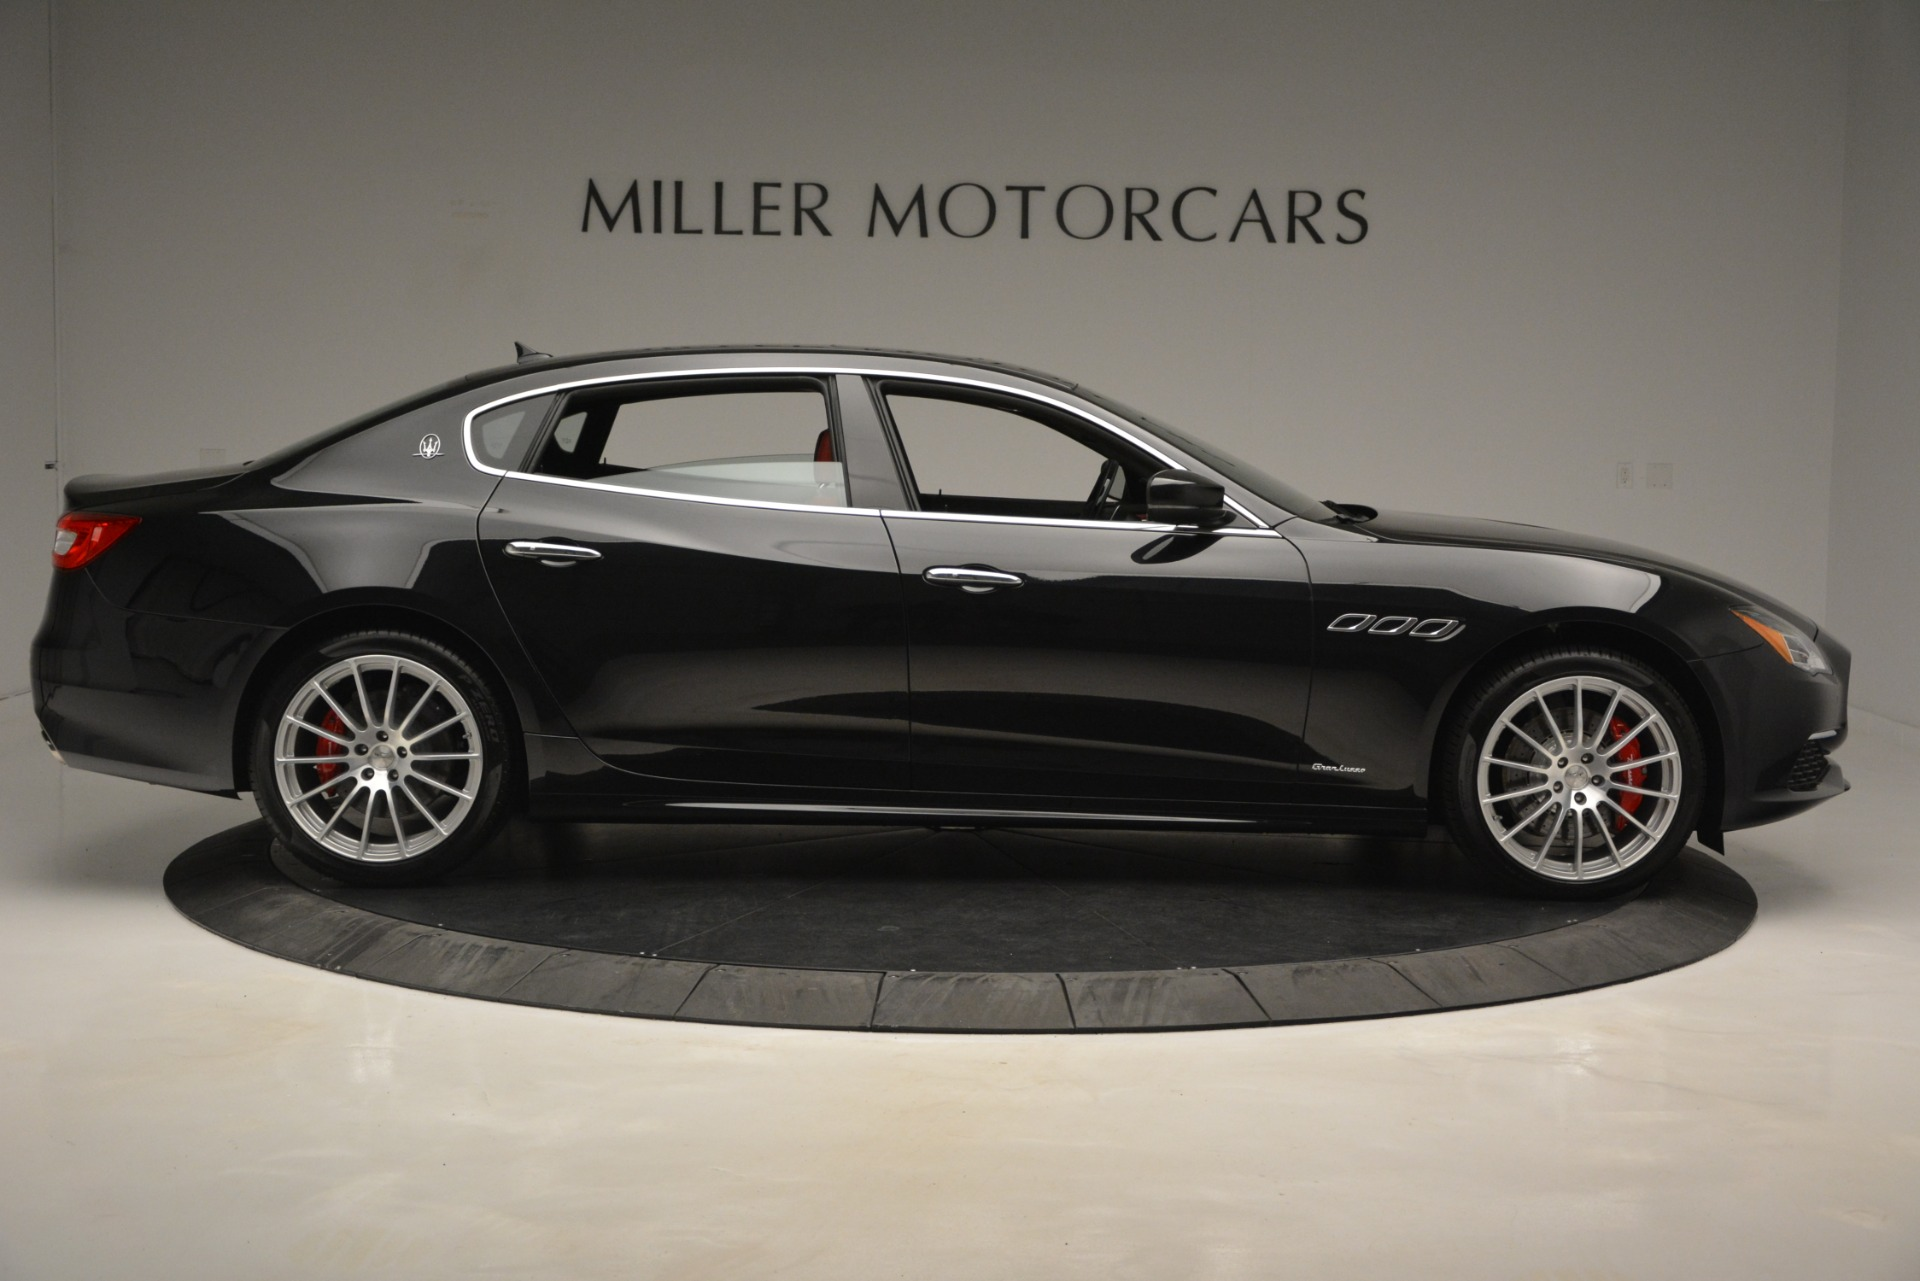 New 2019 Maserati Quattroporte S Q4 GranLusso For Sale In Greenwich, CT. Alfa Romeo of Greenwich, W629 2718_p9